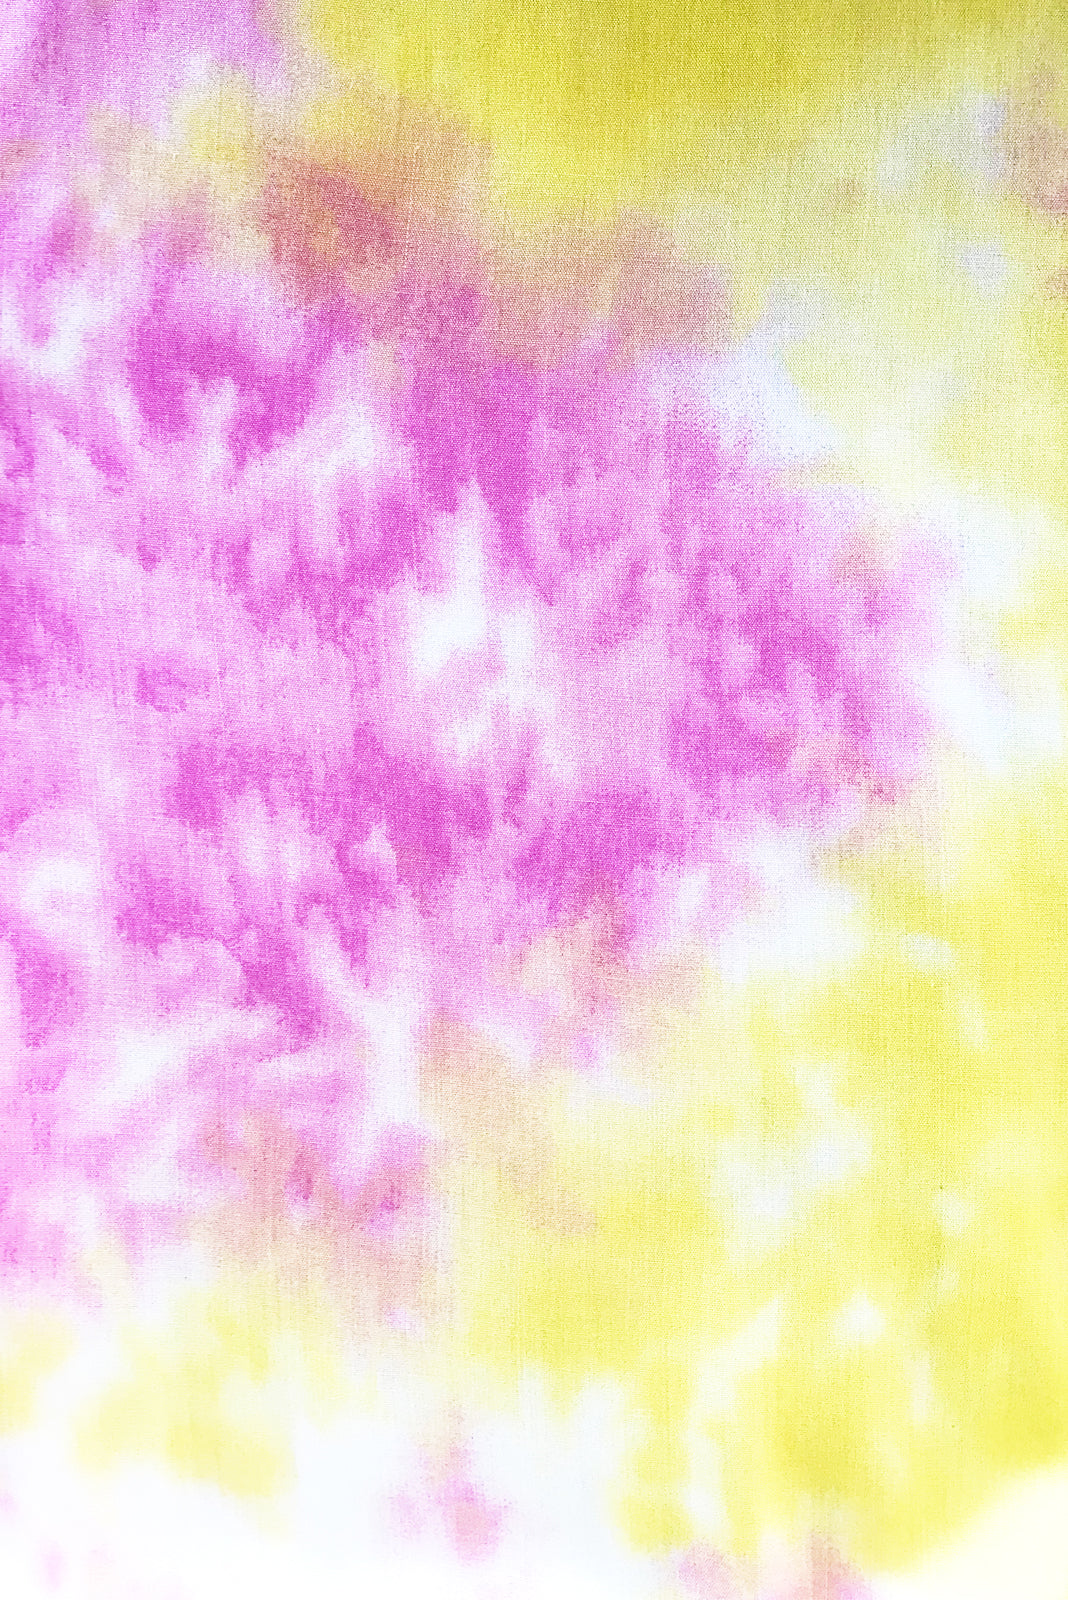 Fabric Swatch of Ace Gelati Tie Dye Dress featuring  100% rayon in pink and yellow tie dye.